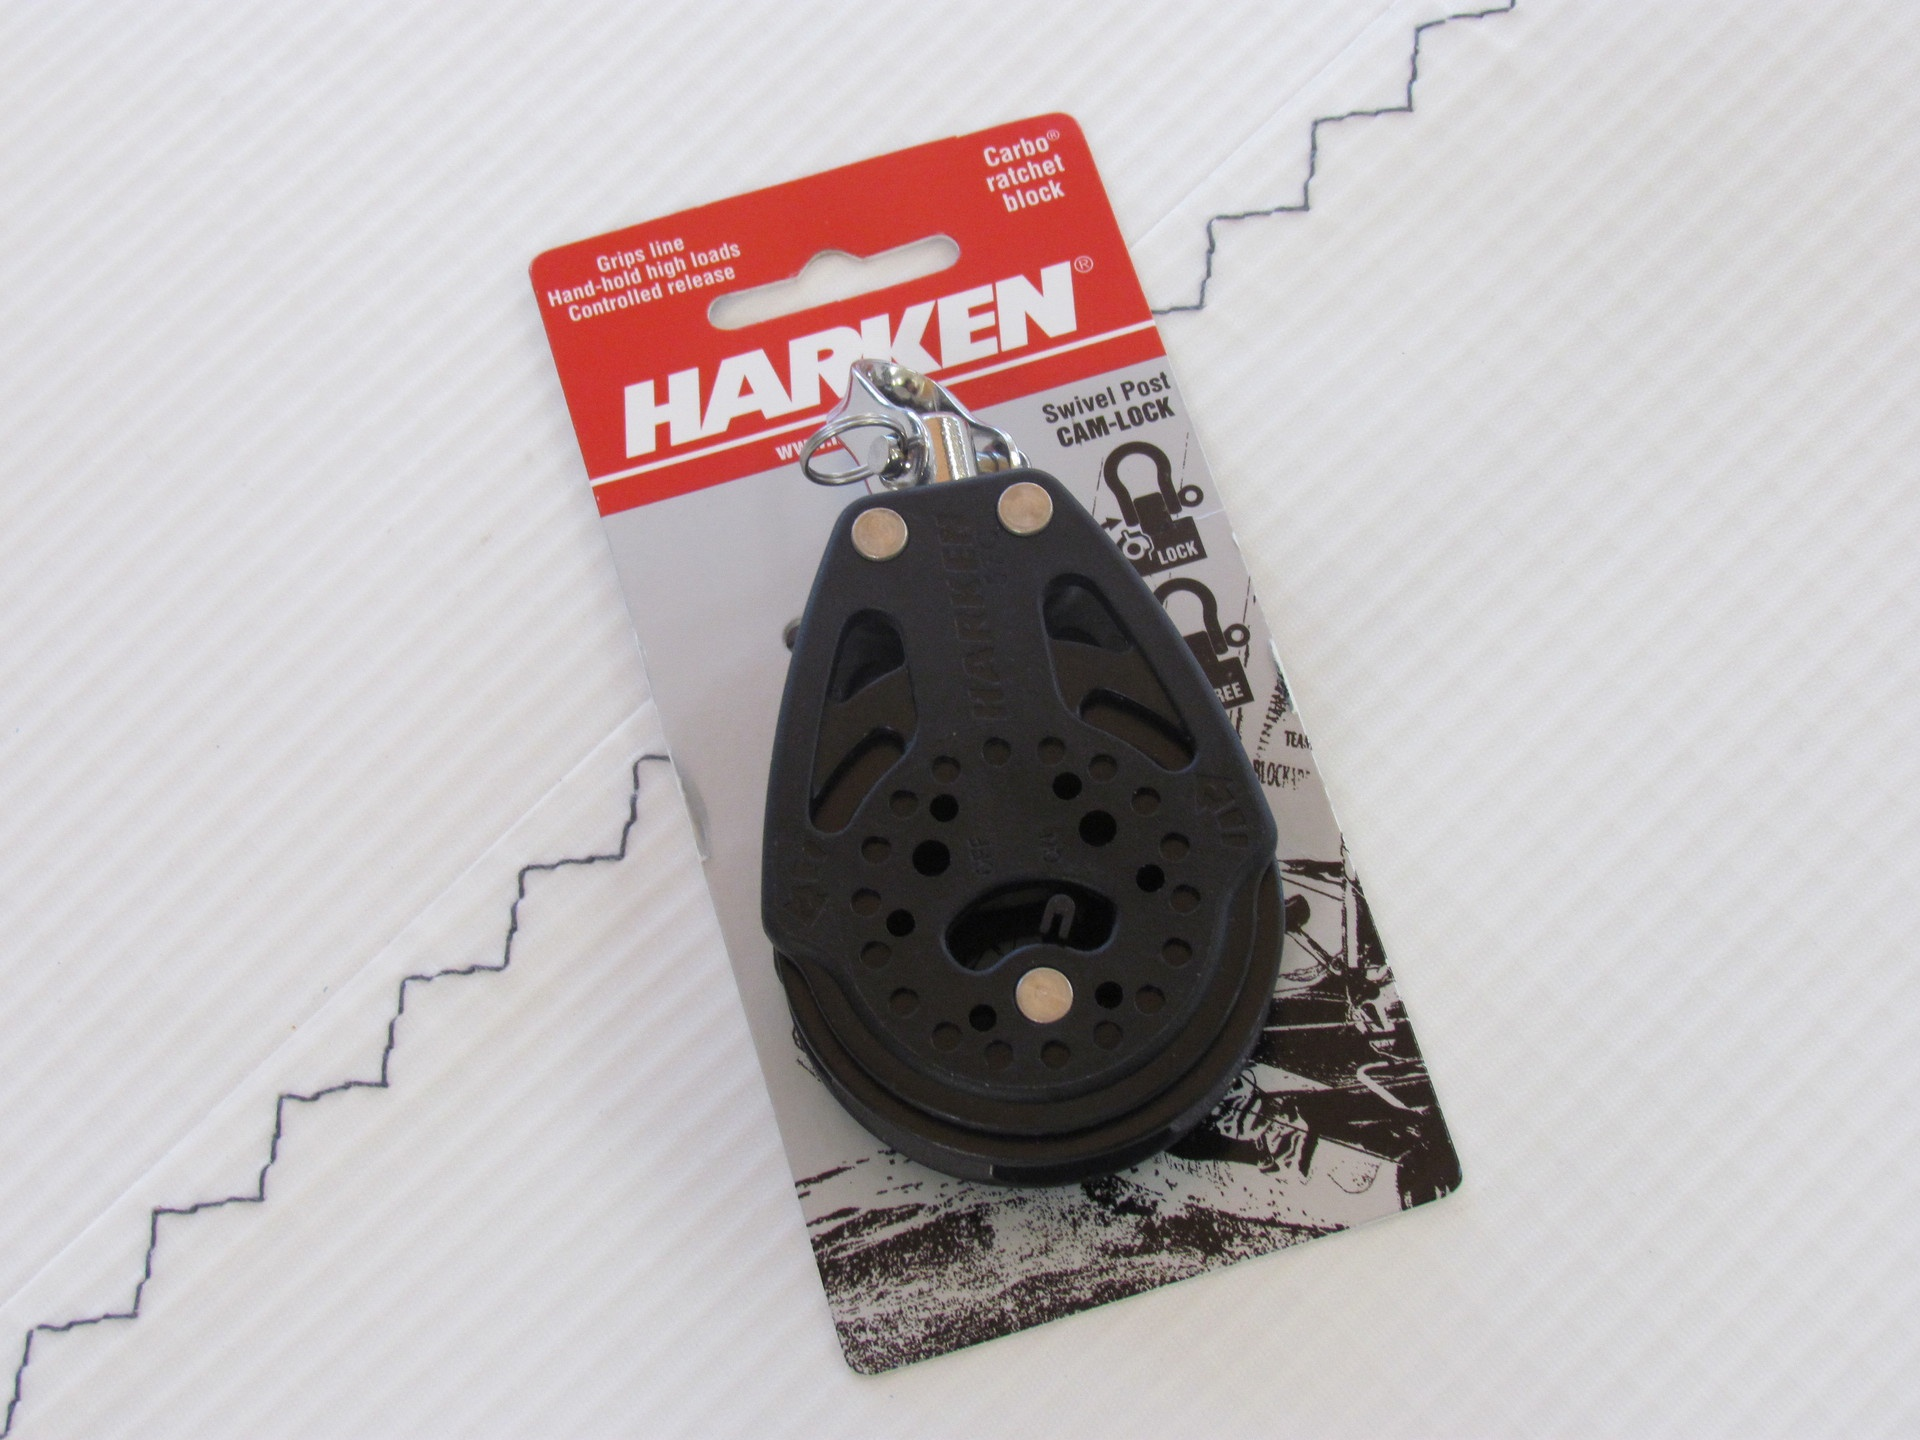 Harken 57MM Carbo Ratchet